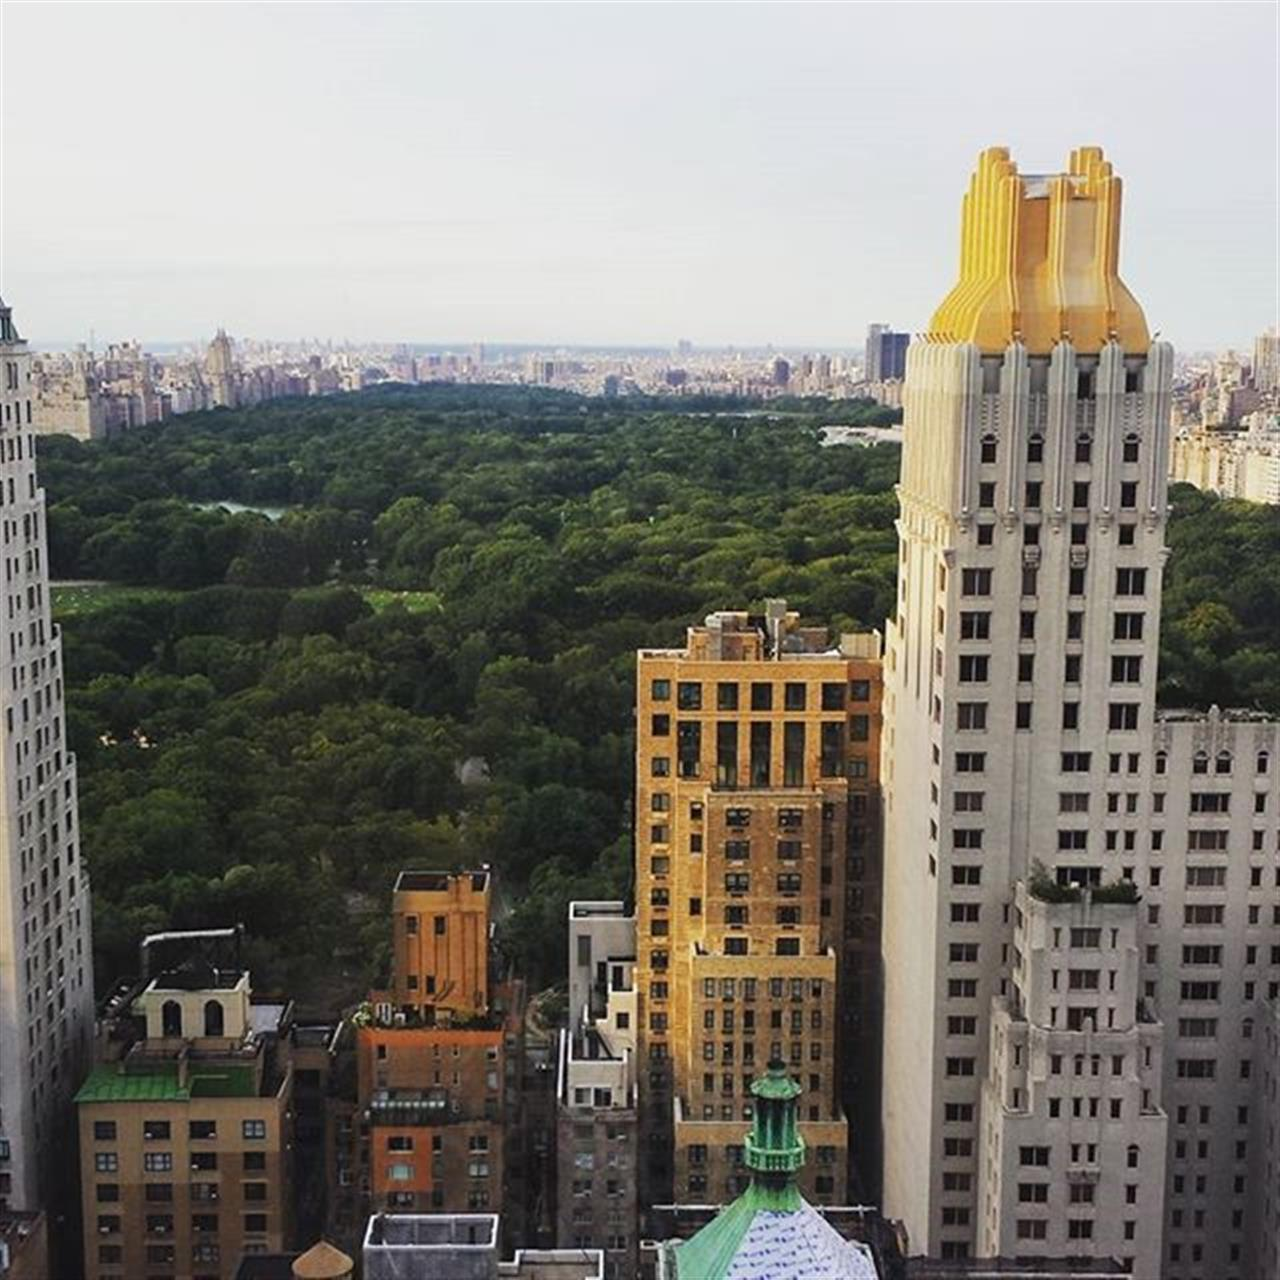 View from the Parker Meridian #centralpark #manhattan #nyc #leadingrelocal #exploreyourhood